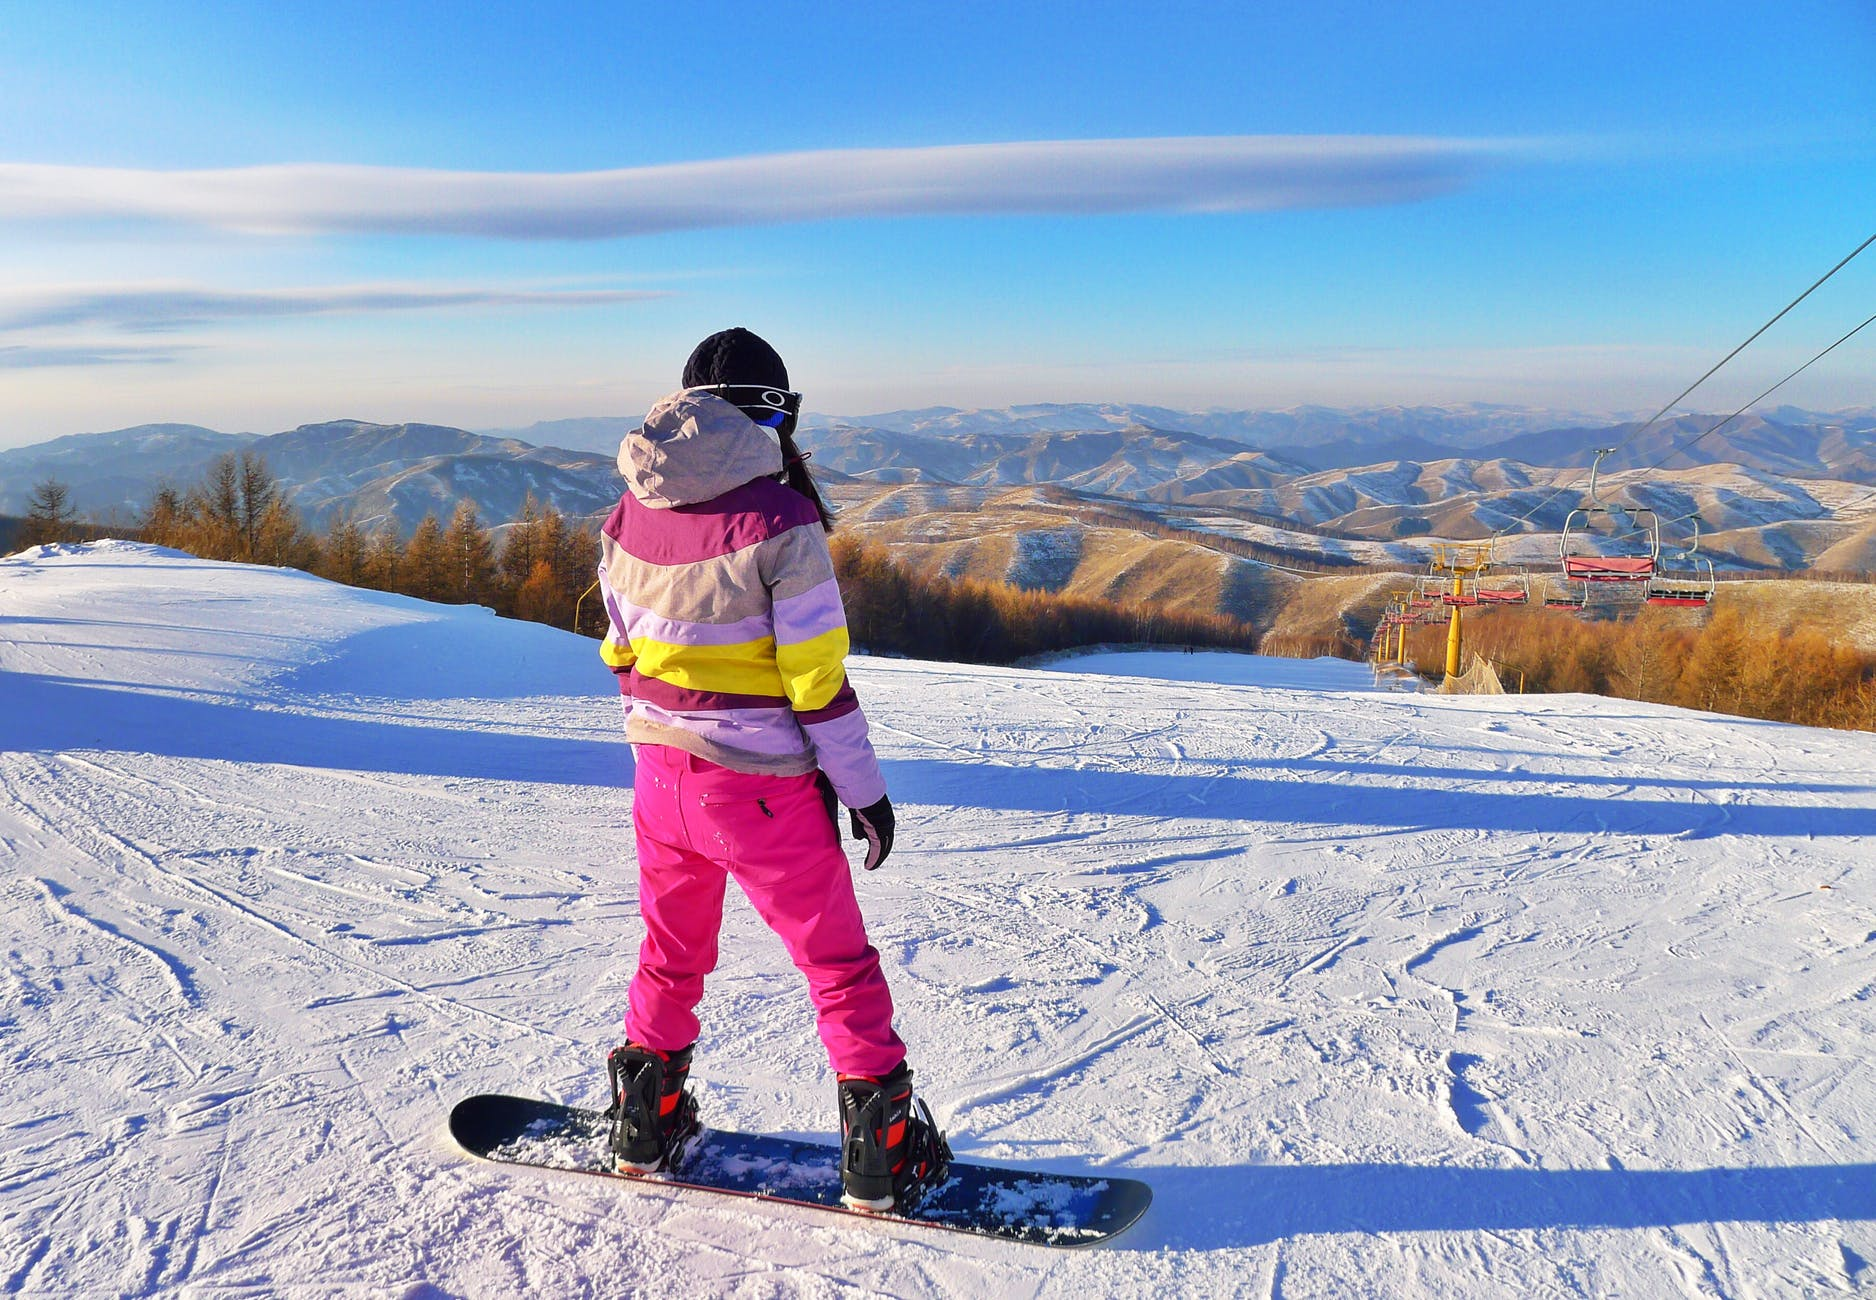 Amazing Ski Gloves Selections Best for Skiing